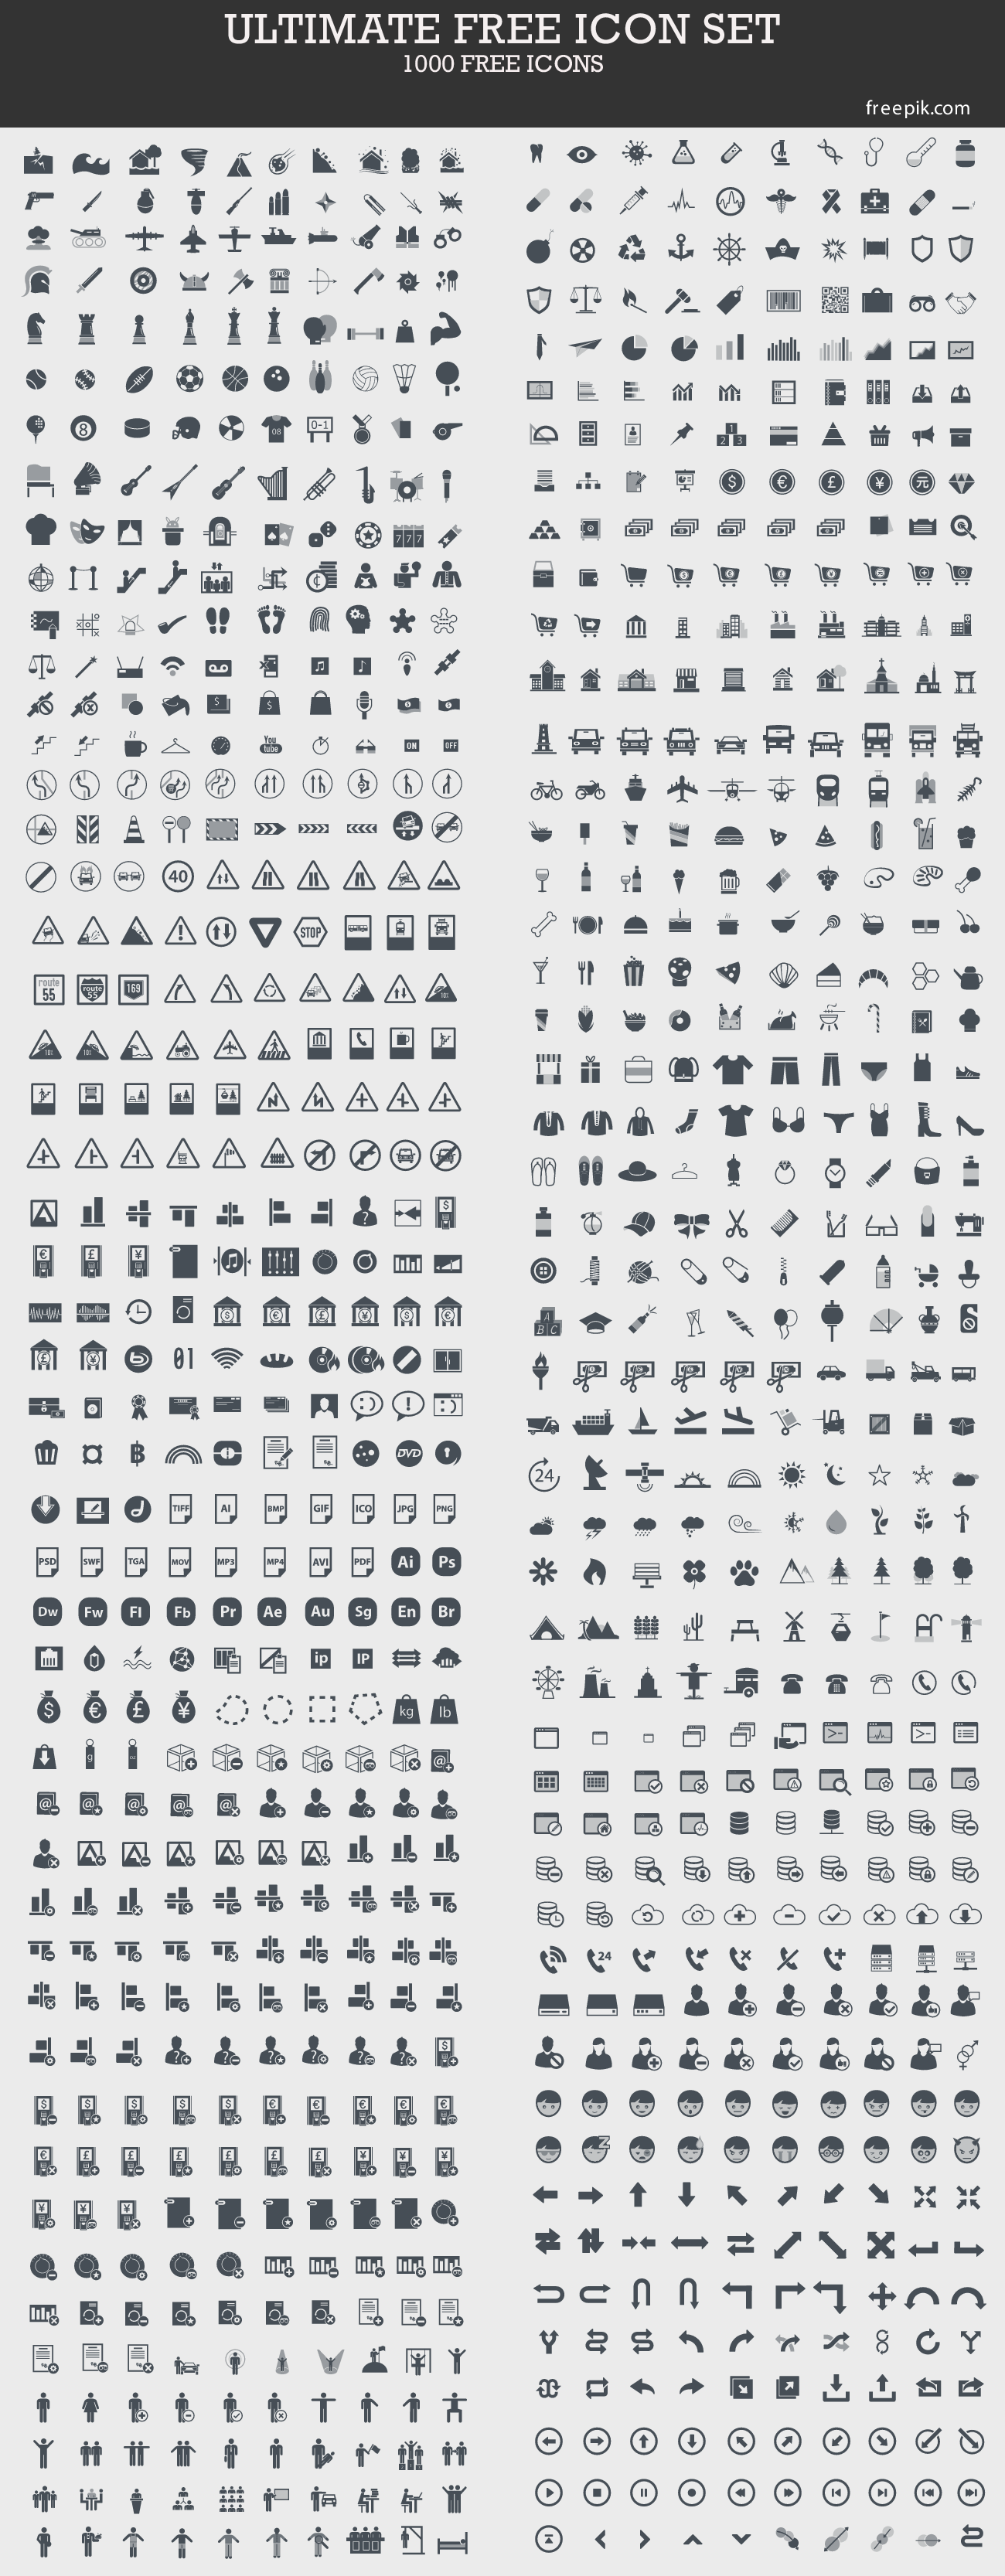 ultimate free icon set 1000 icons this is a great set to use as